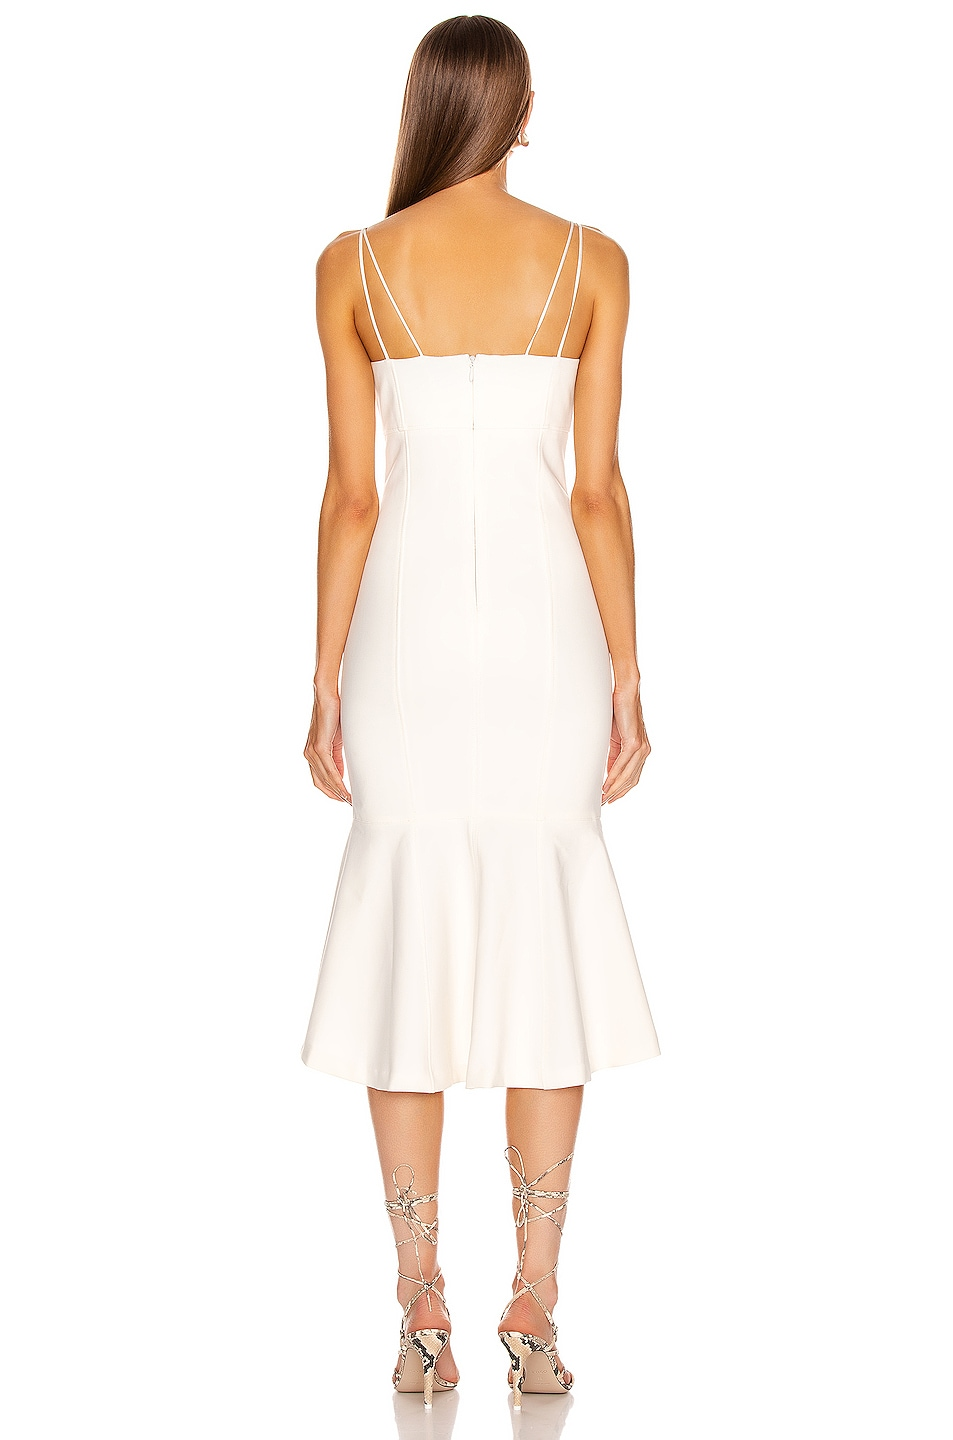 Image 3 of Cinq a Sept Salina Dress in White